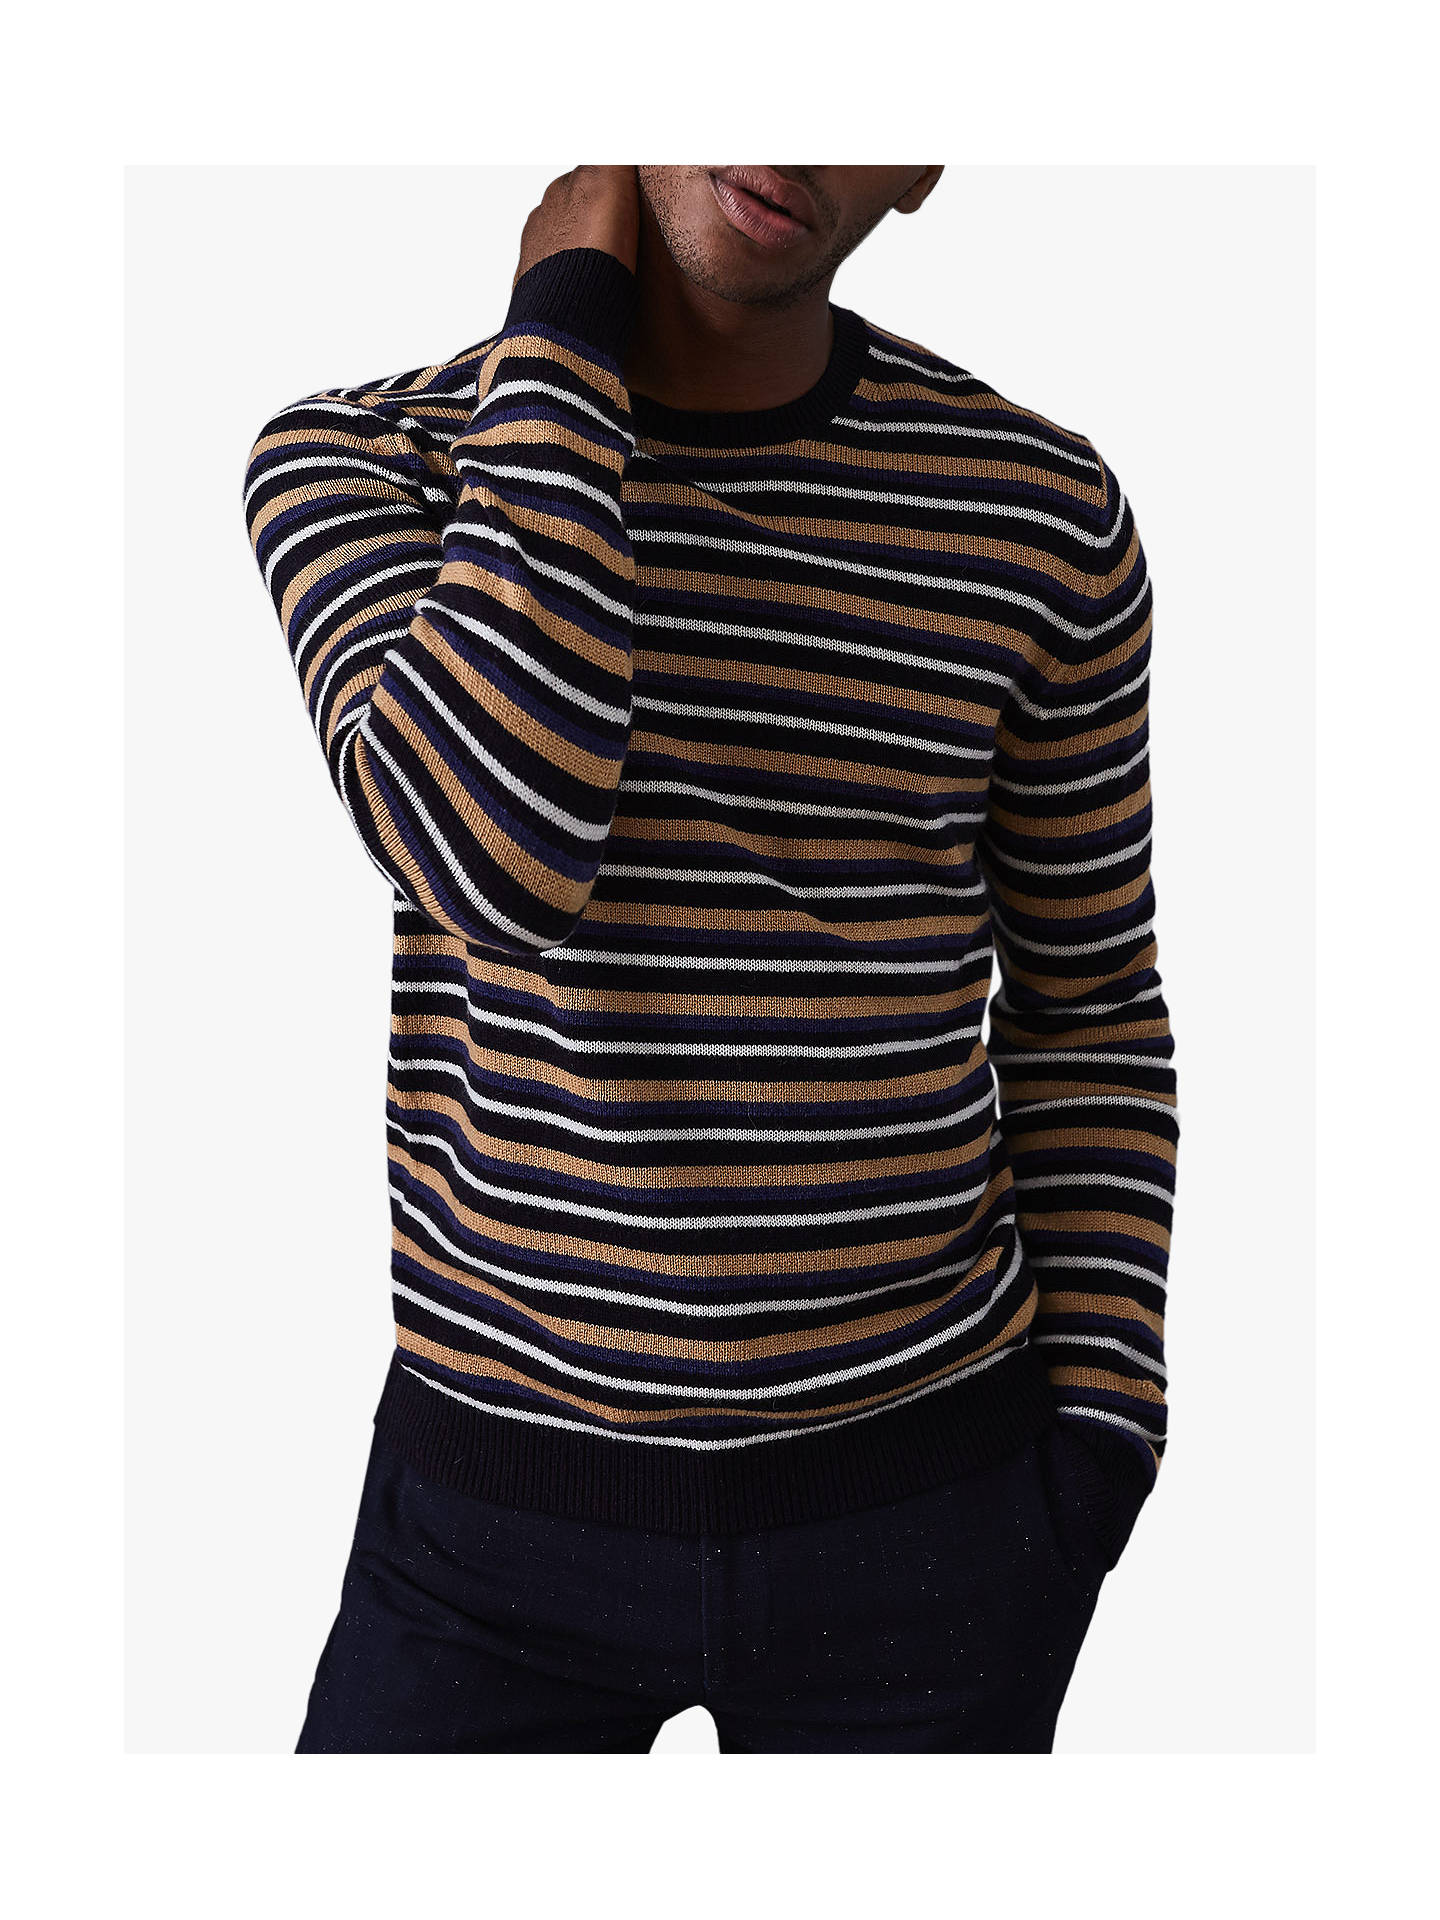 Interruzione Dettatura Rituale  Reiss Brindisi Striped Crew Neck Jumper, Navy at John Lewis & Partners